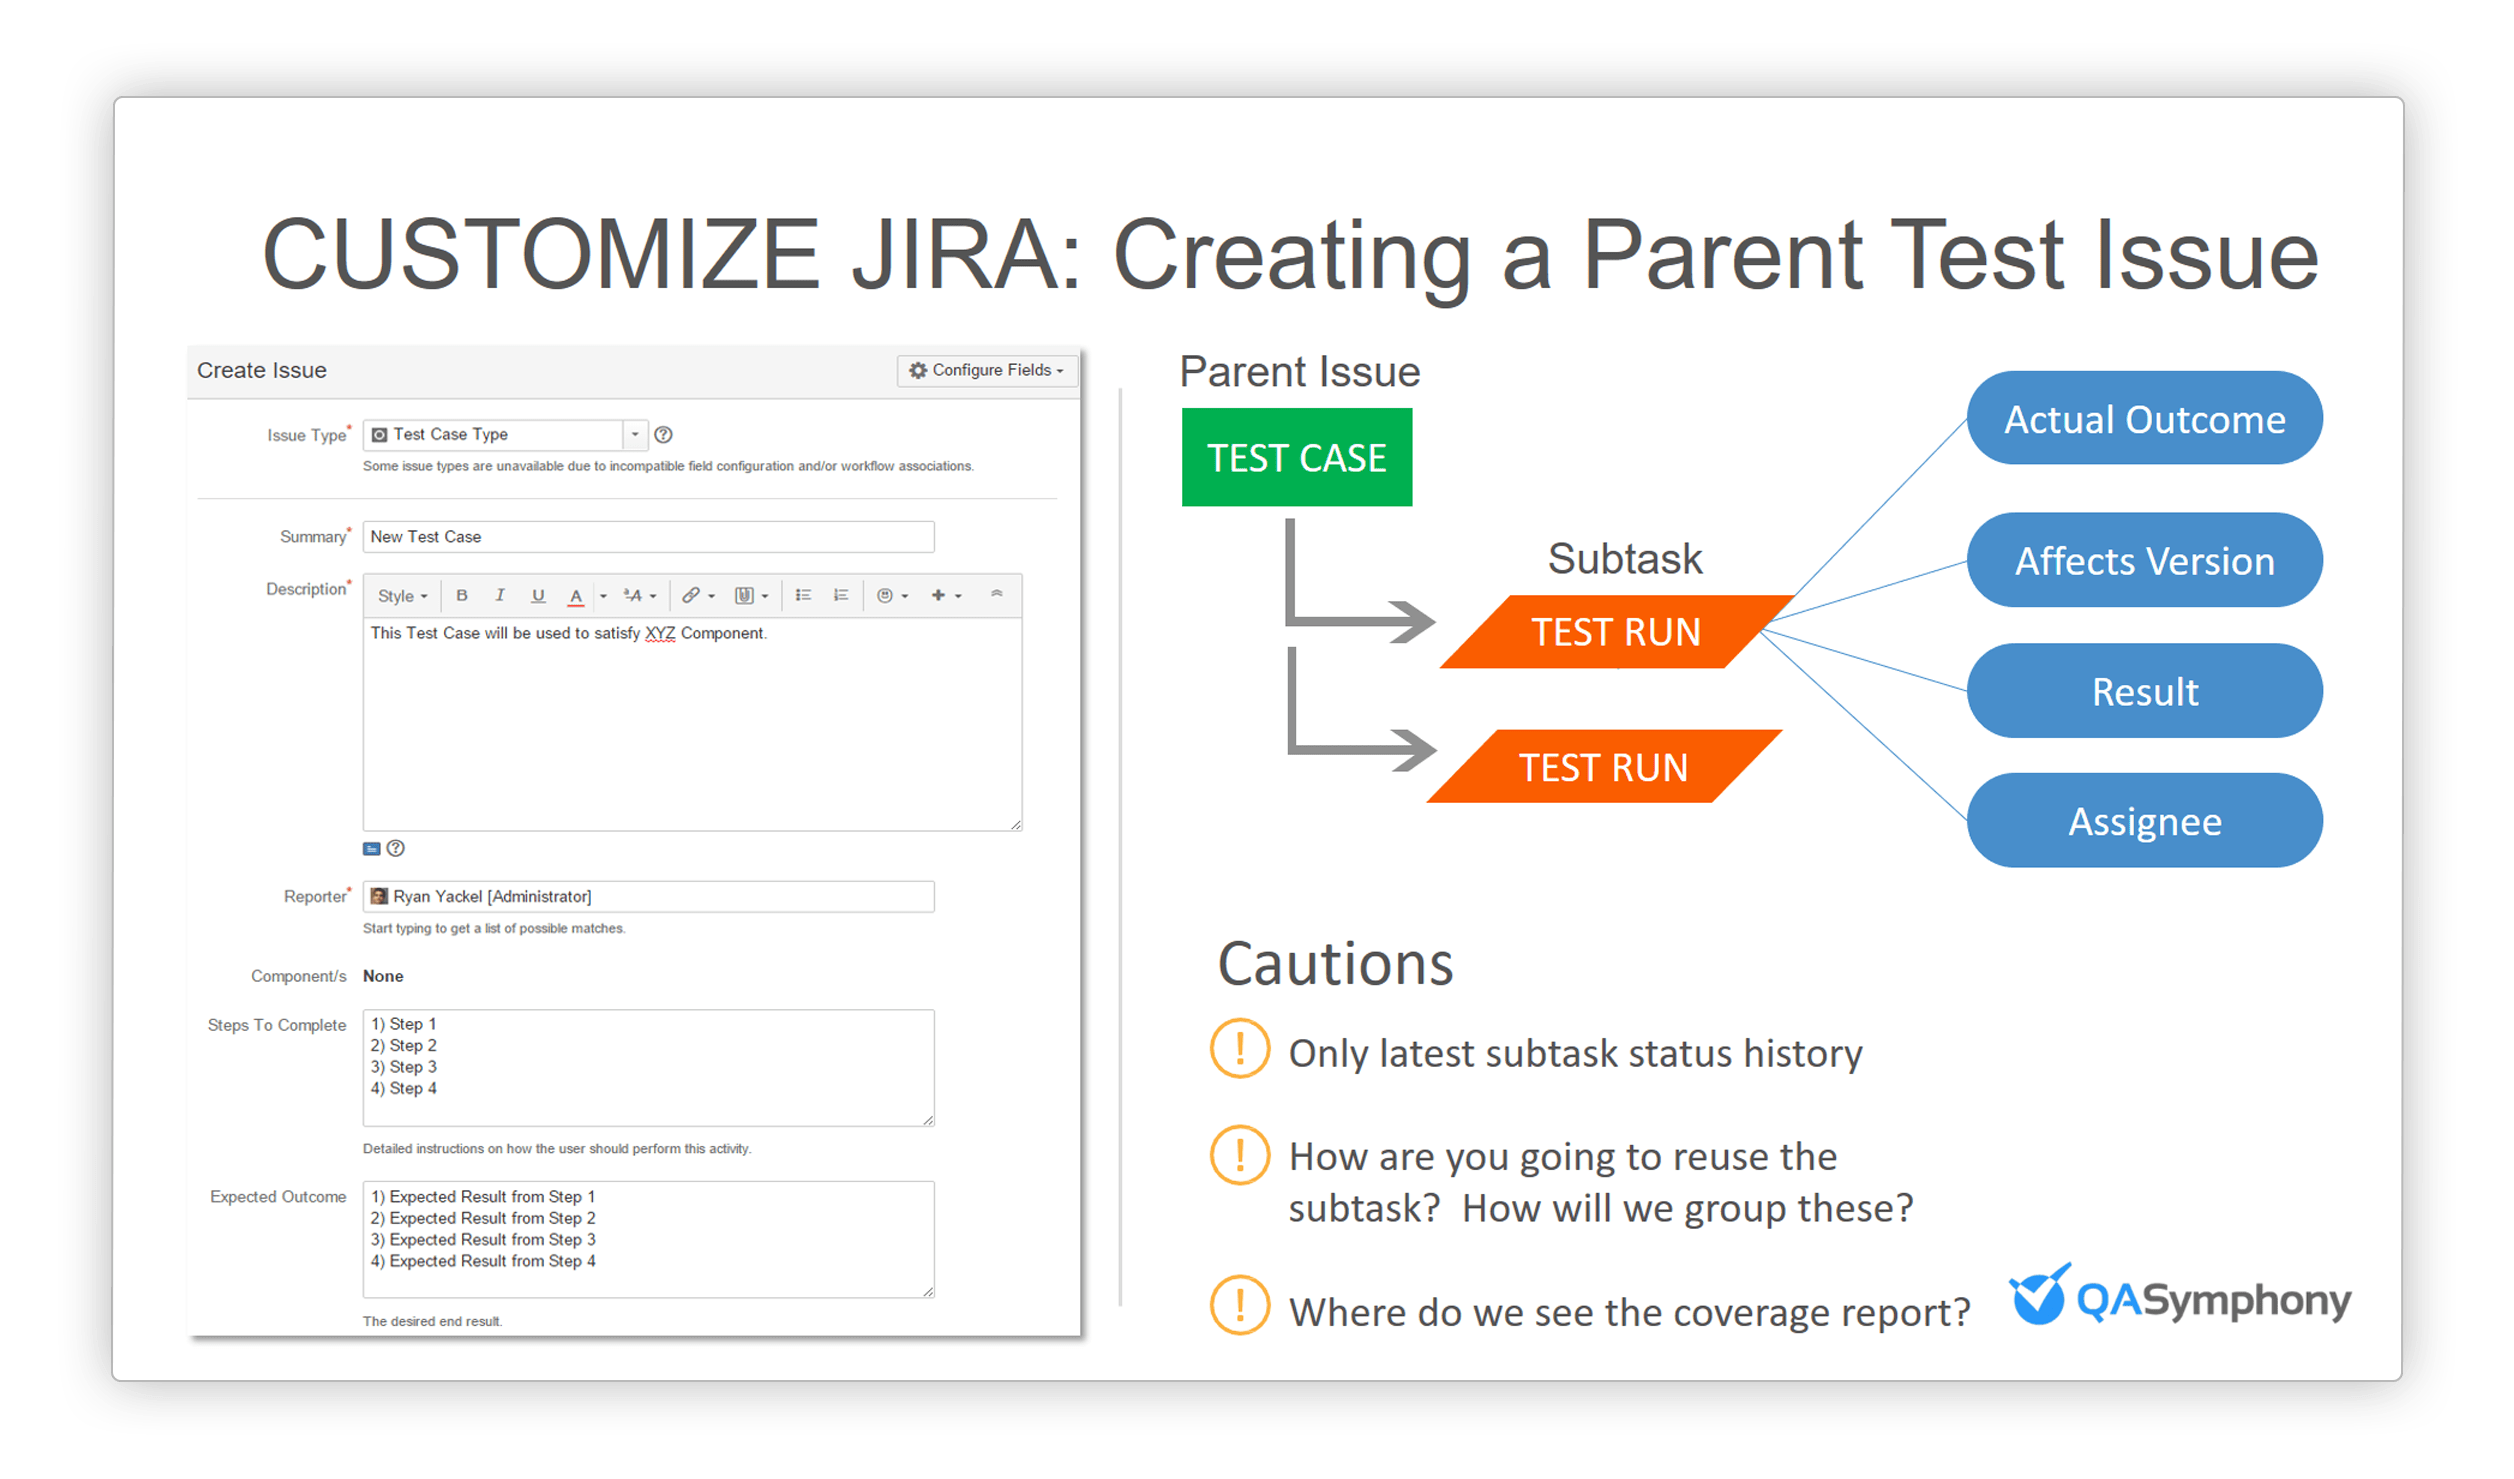 JIRA for Test Management - Customizing Using Parent Issue